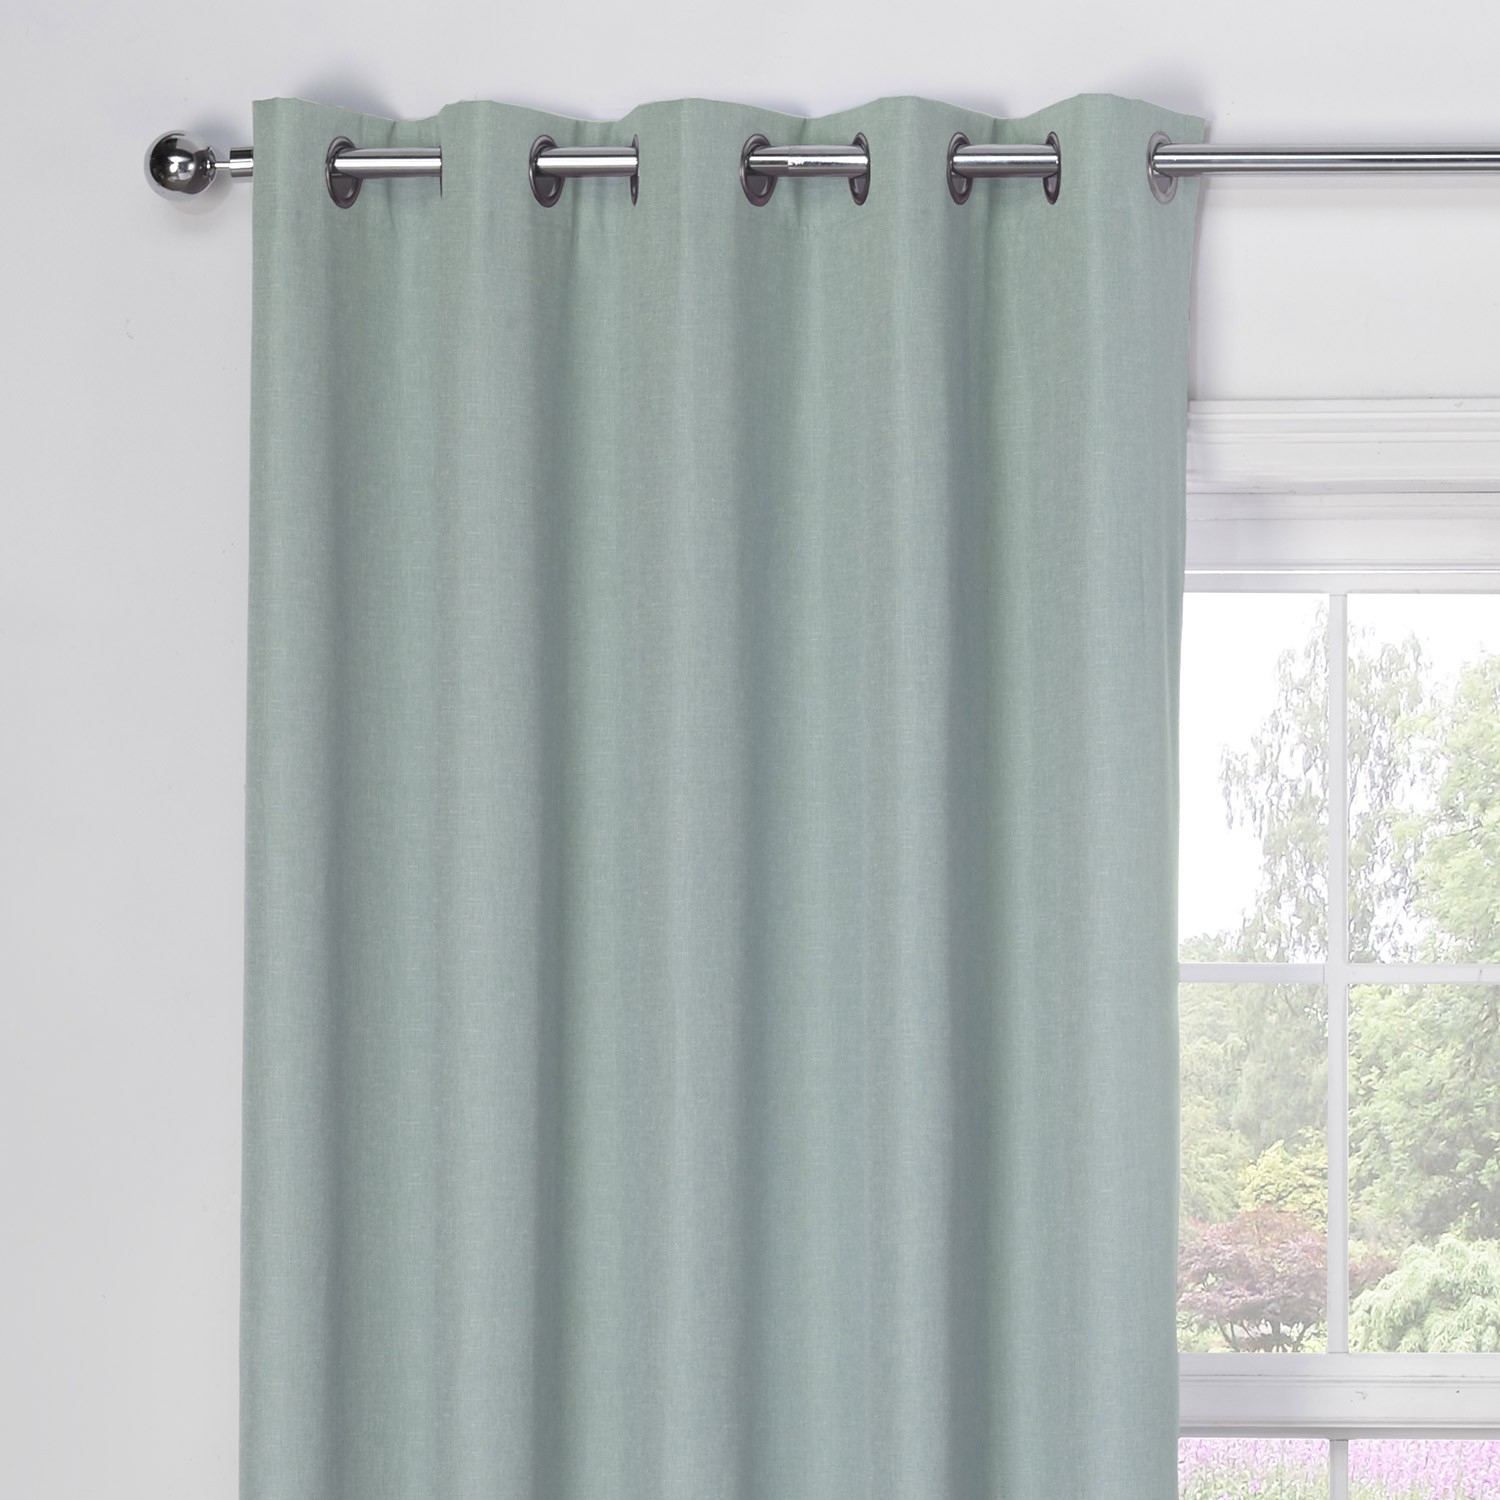 Luna Duck Egg Luxury Blackout Eyelet Curtains Pair Julian Charles Within Duck Egg Blue Blackout Curtains (Image 12 of 15)